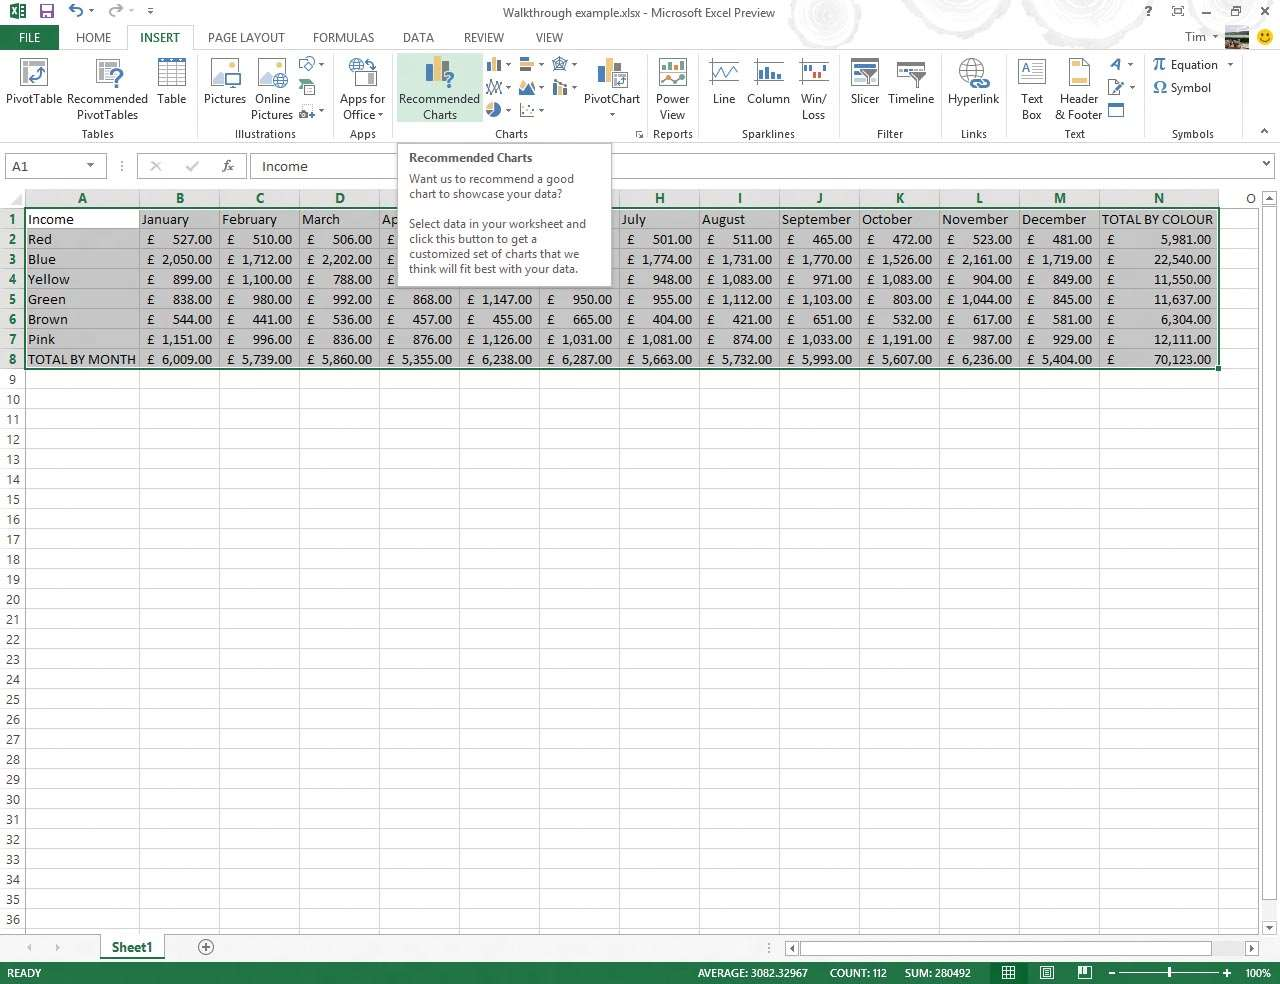 Solutions Manual For Spreadsheet Tools For Engineers Using Excel